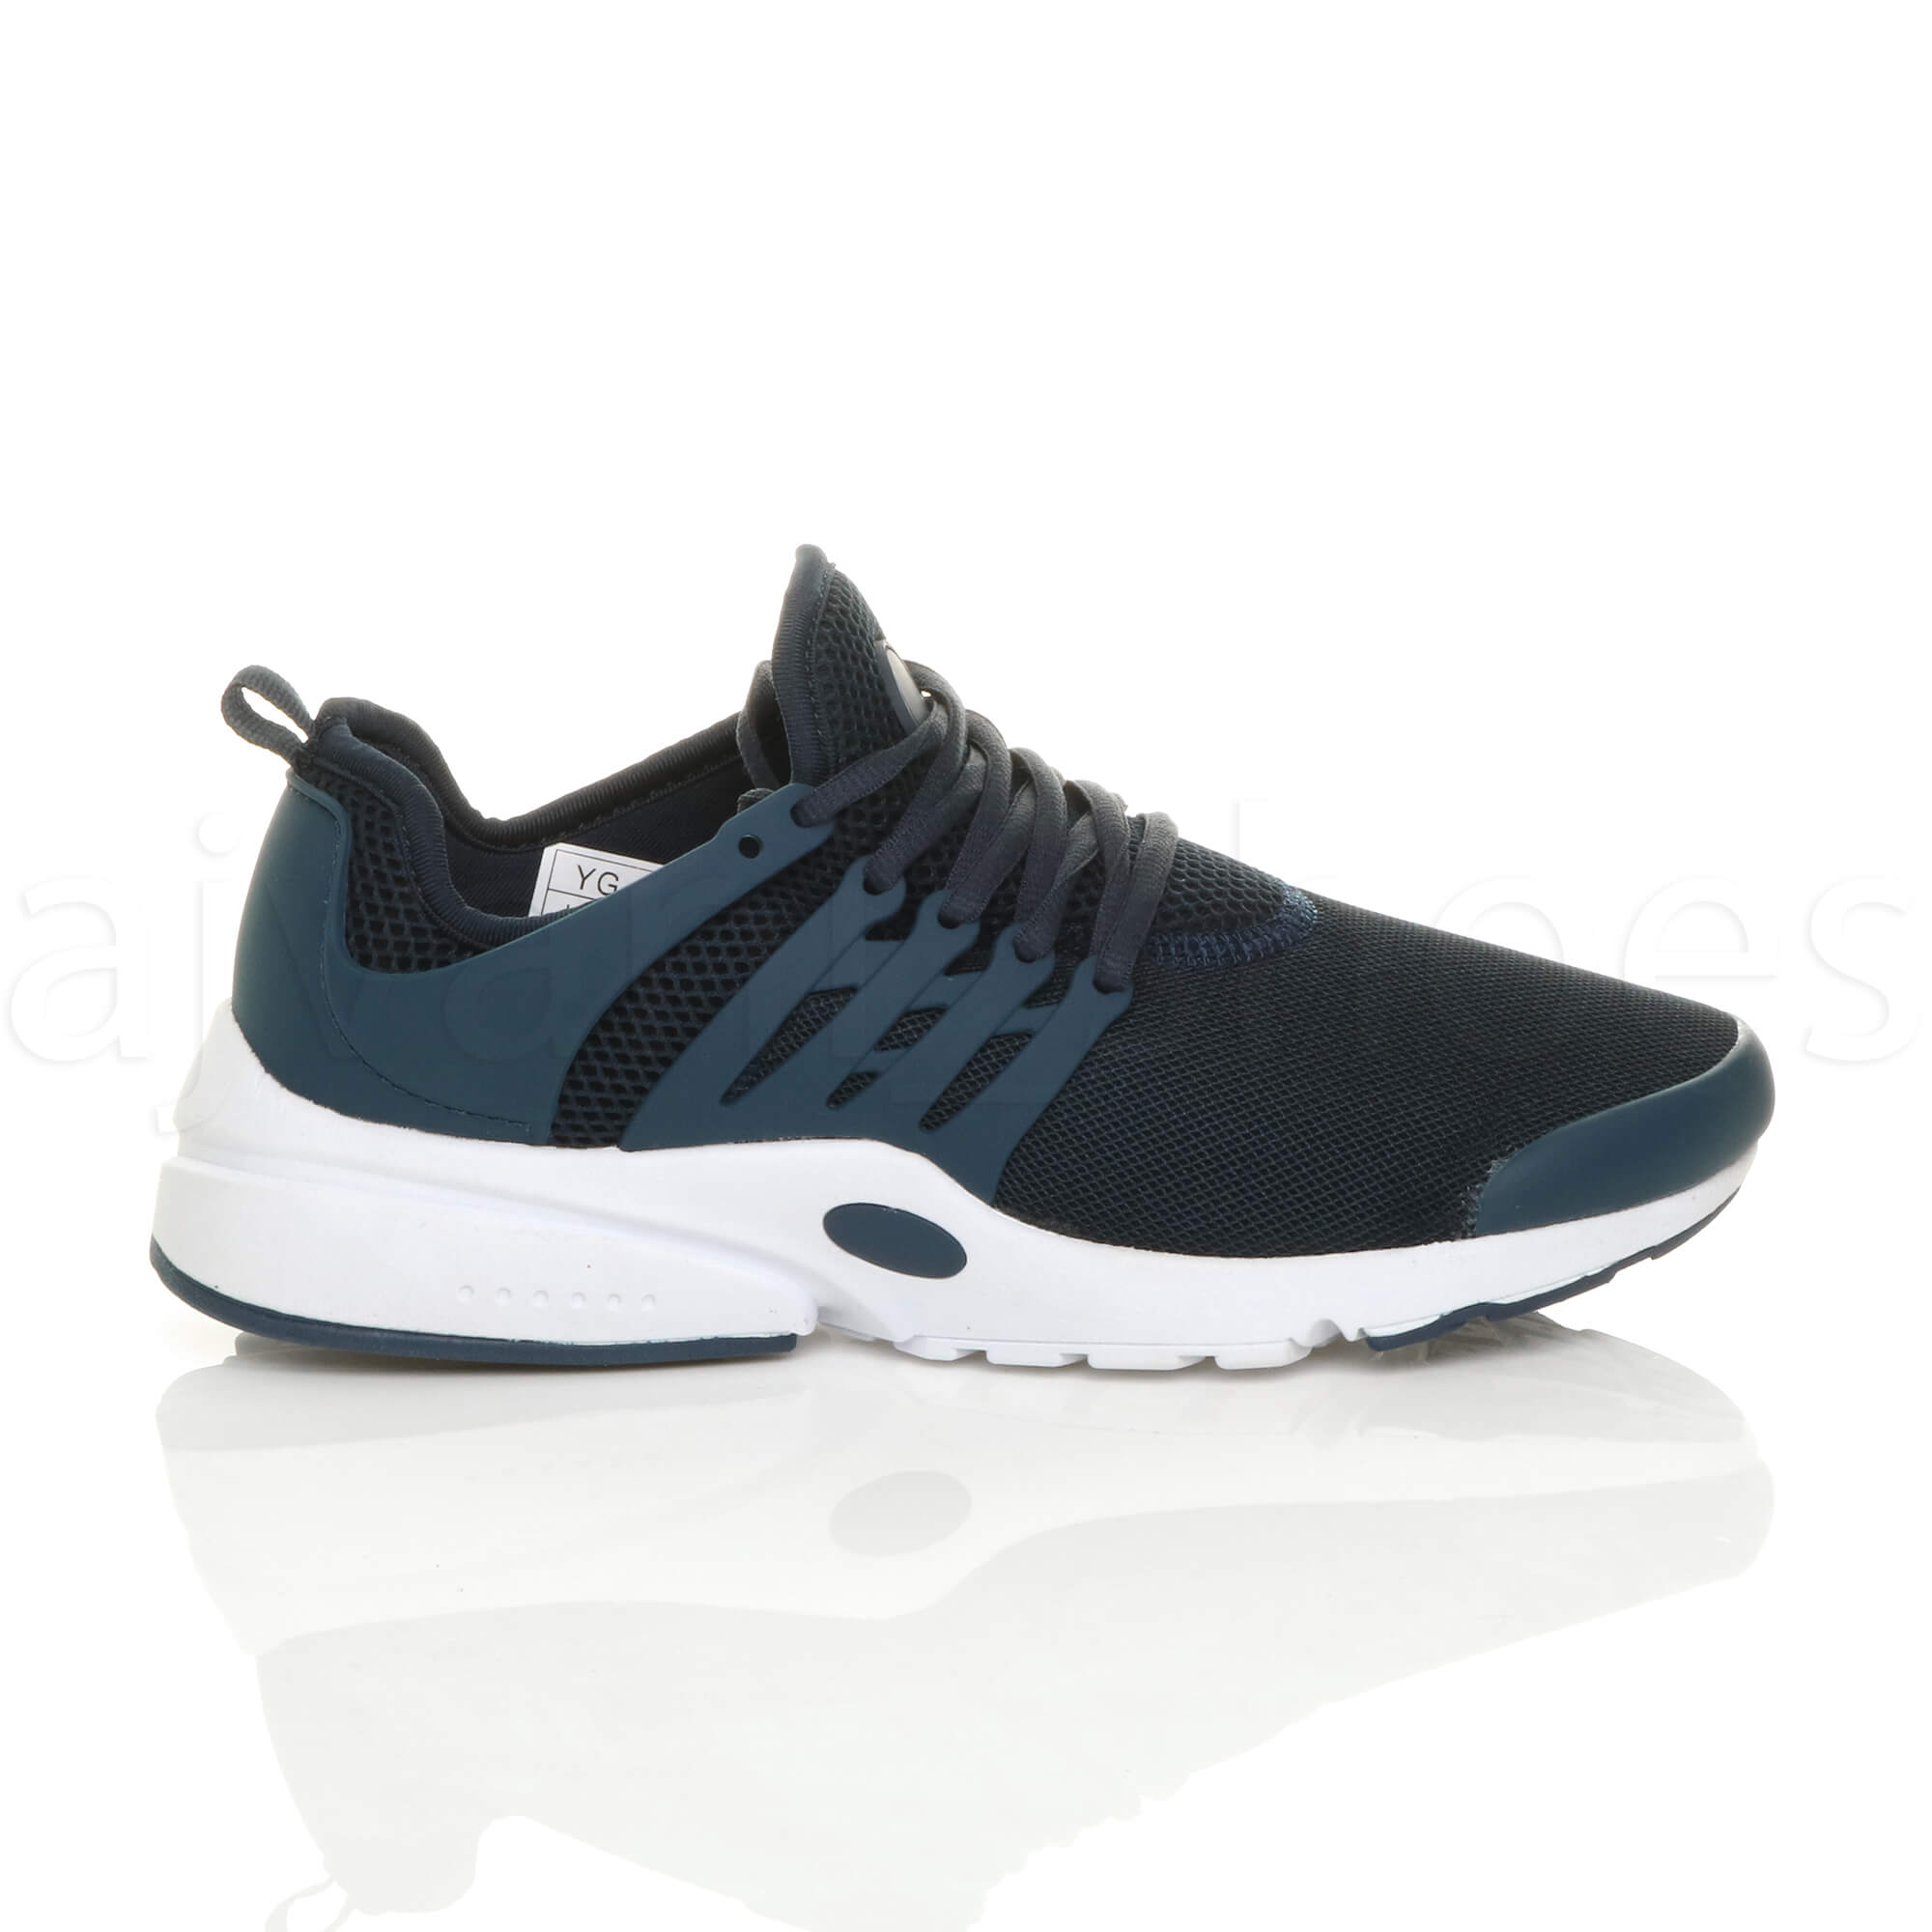 MENS-LACE-UP-SPORTS-GYM-FITNESS-RUNNING-FLEXIBLE-TRAINERS-CASUAL-SNEAKERS-SIZE thumbnail 35